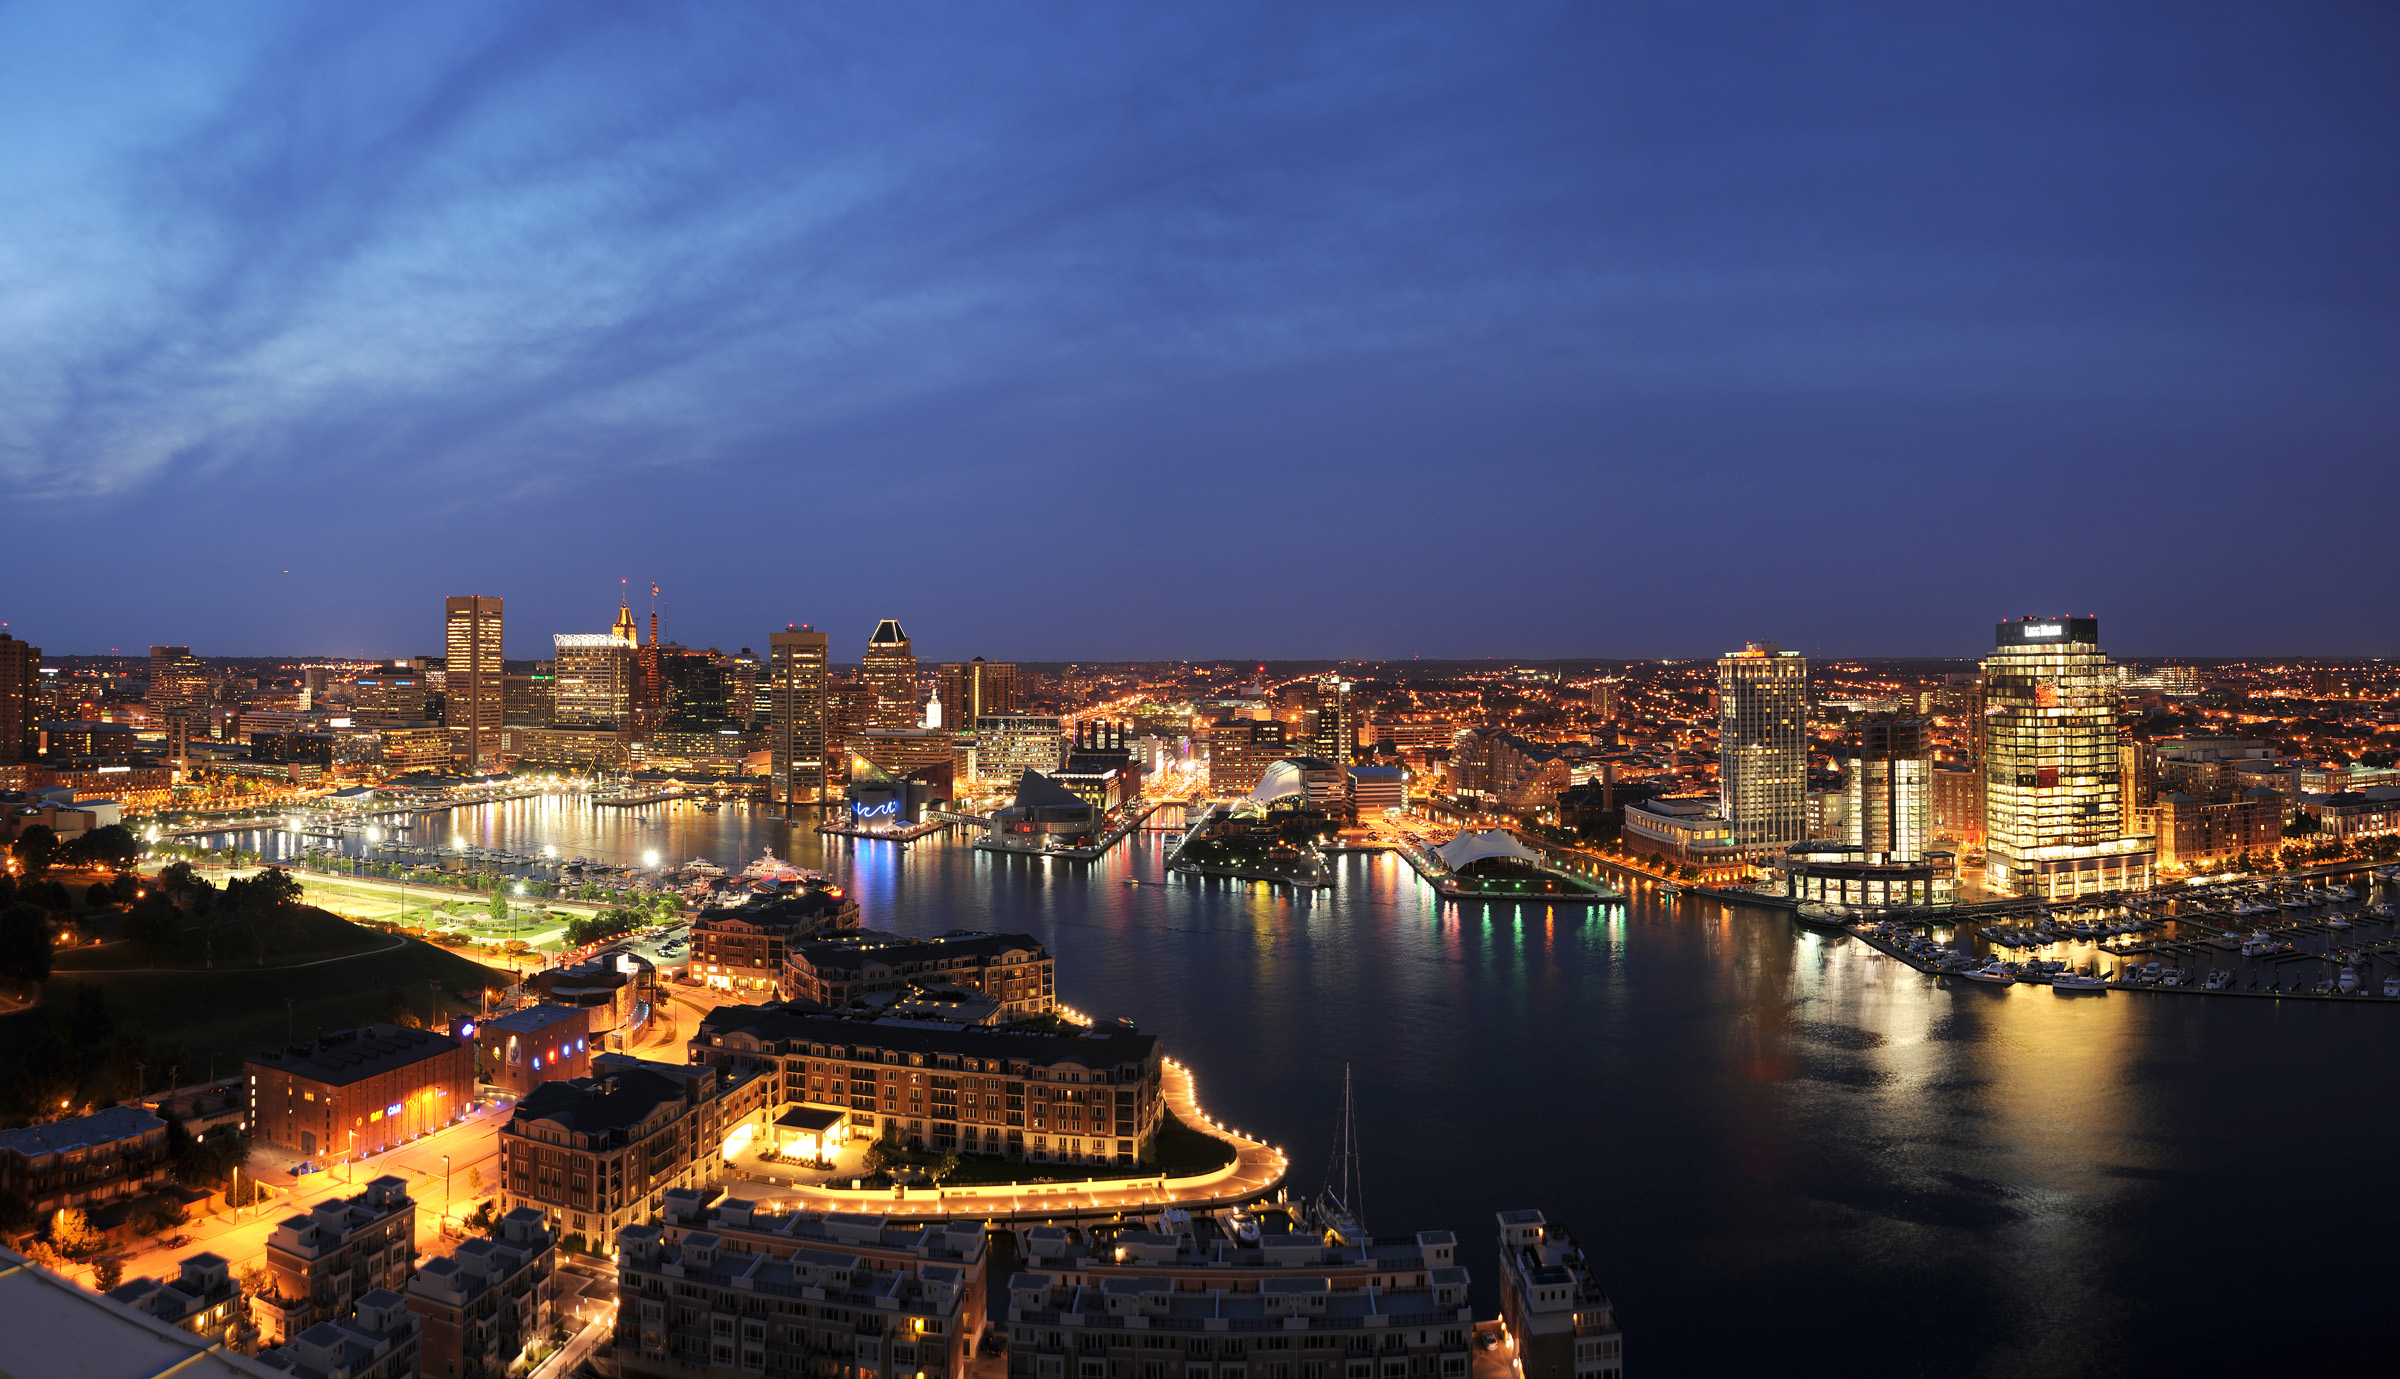 JUST OVER ONE WEEK LEFT TO PREREGISTER AND CHOOSE HOUSING for ITEEA'S 2020 Baltimore Conference.